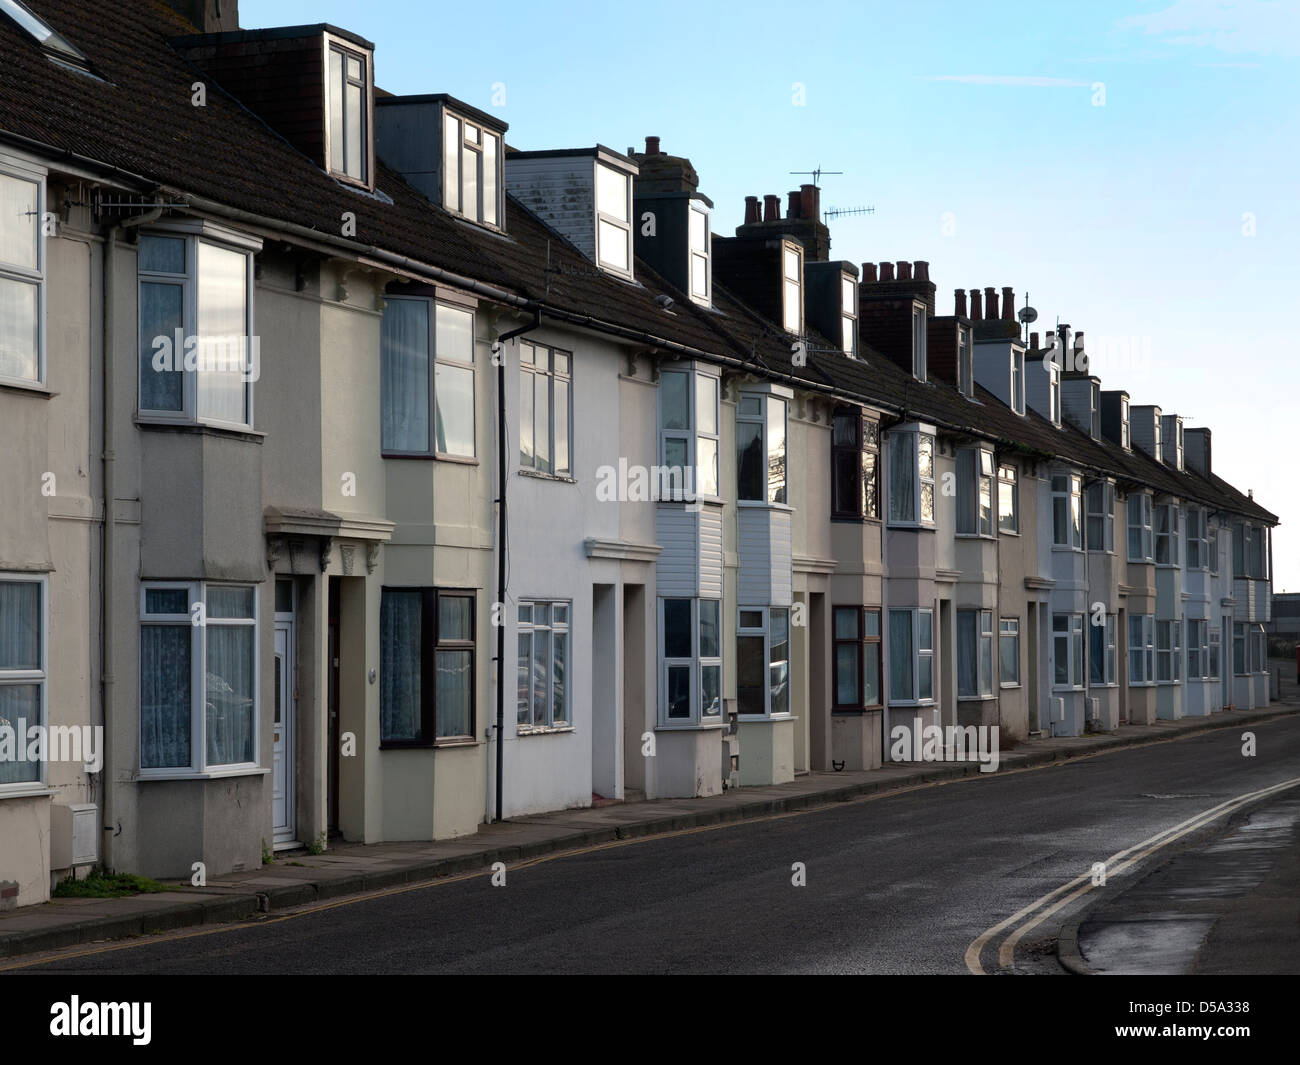 Terraced housing in Newhaven Stock Photo